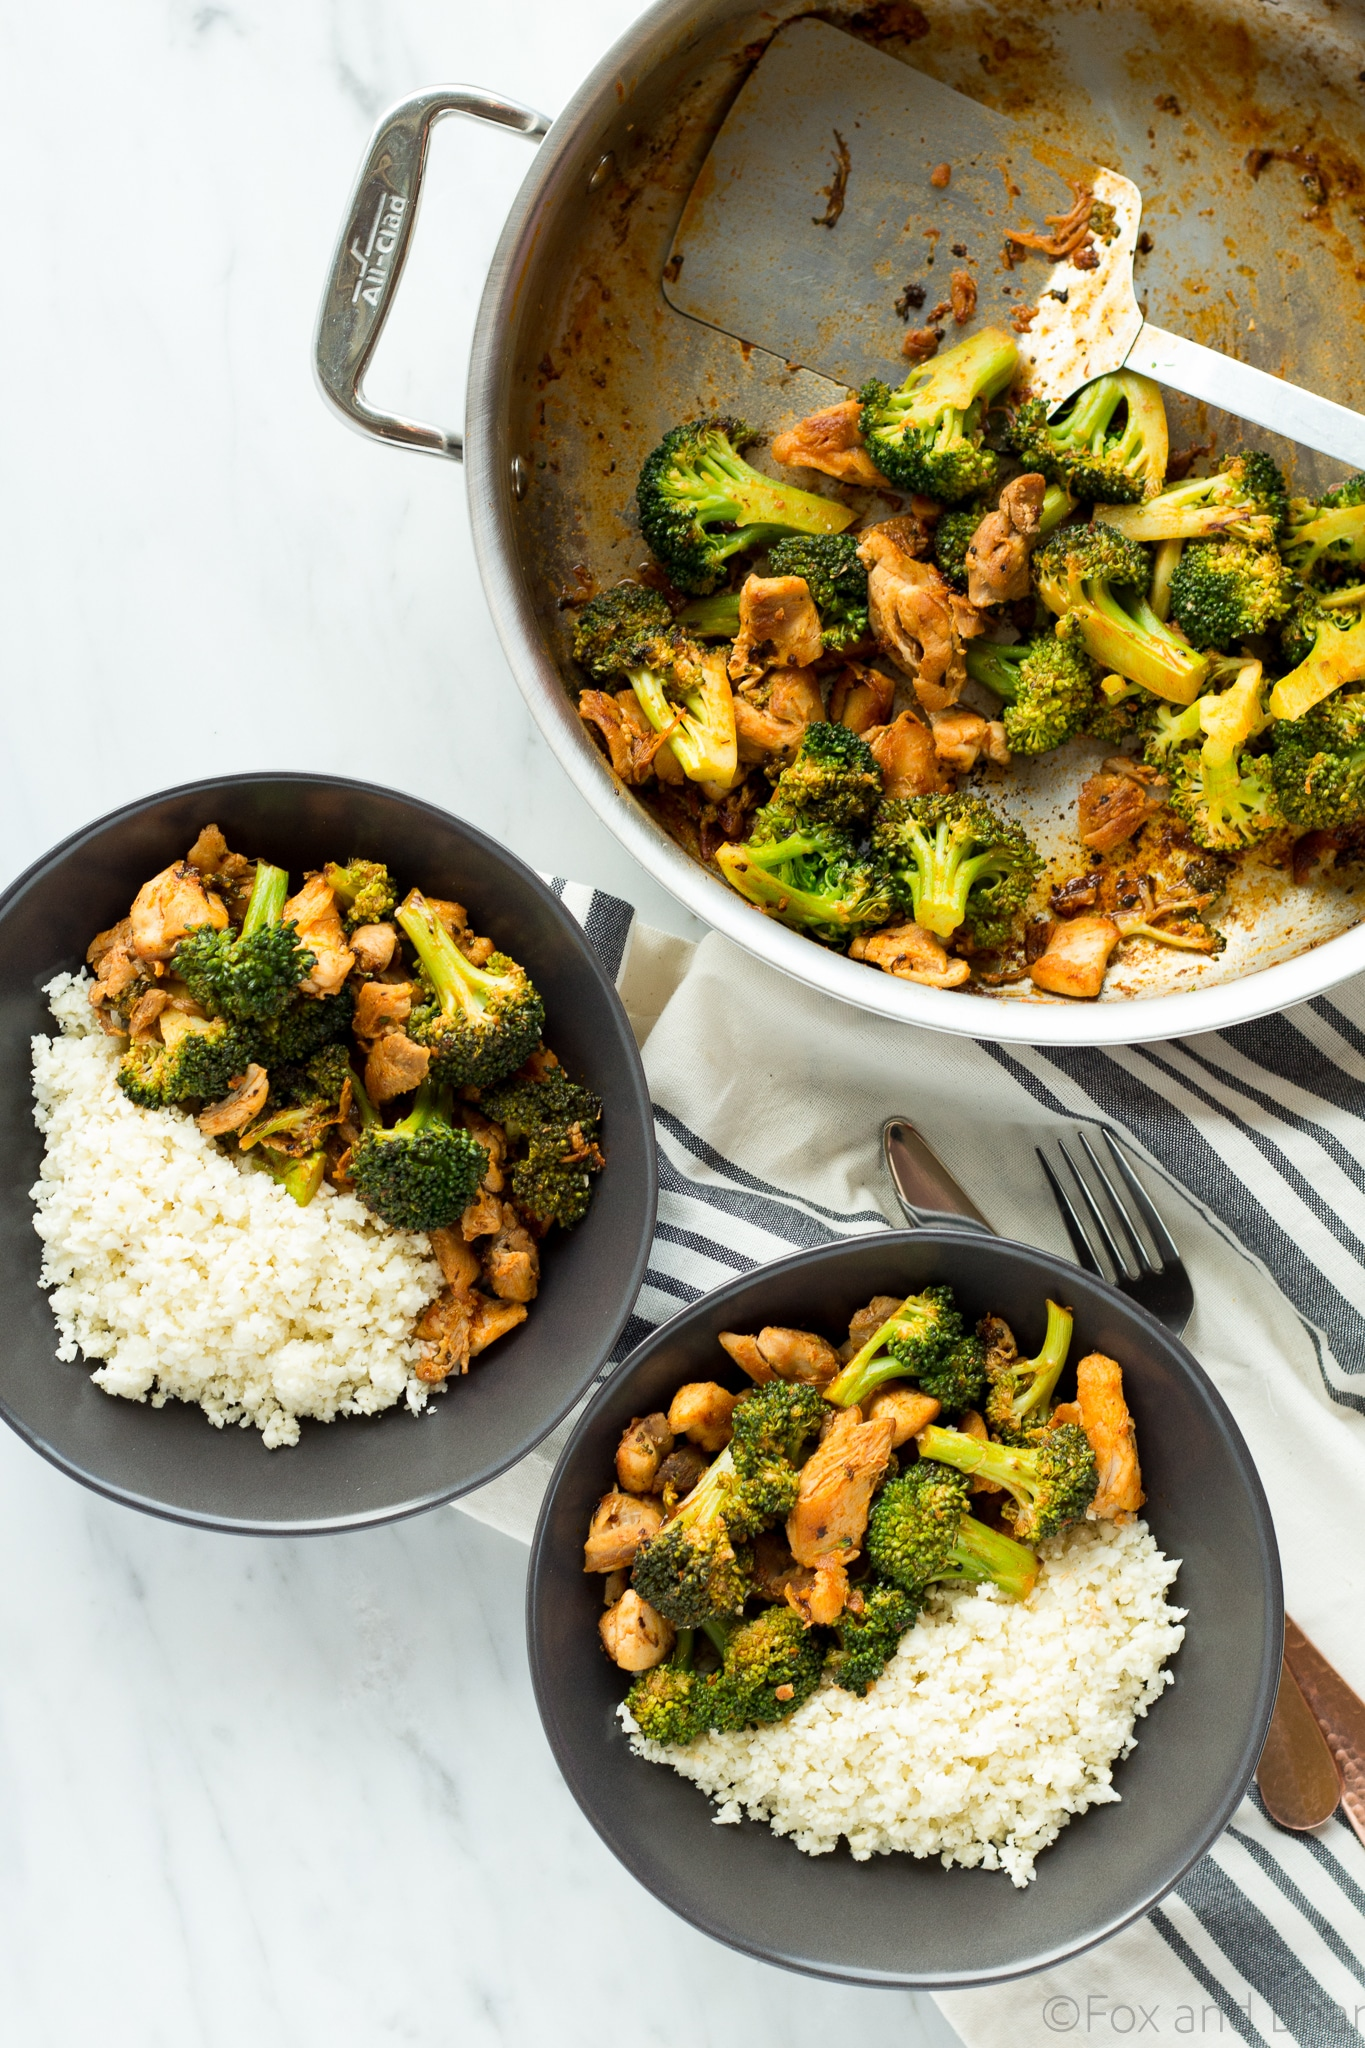 Buffalo chicken and broccoli bowls fox and briar buffalo chicken and broccoli bowls forumfinder Image collections